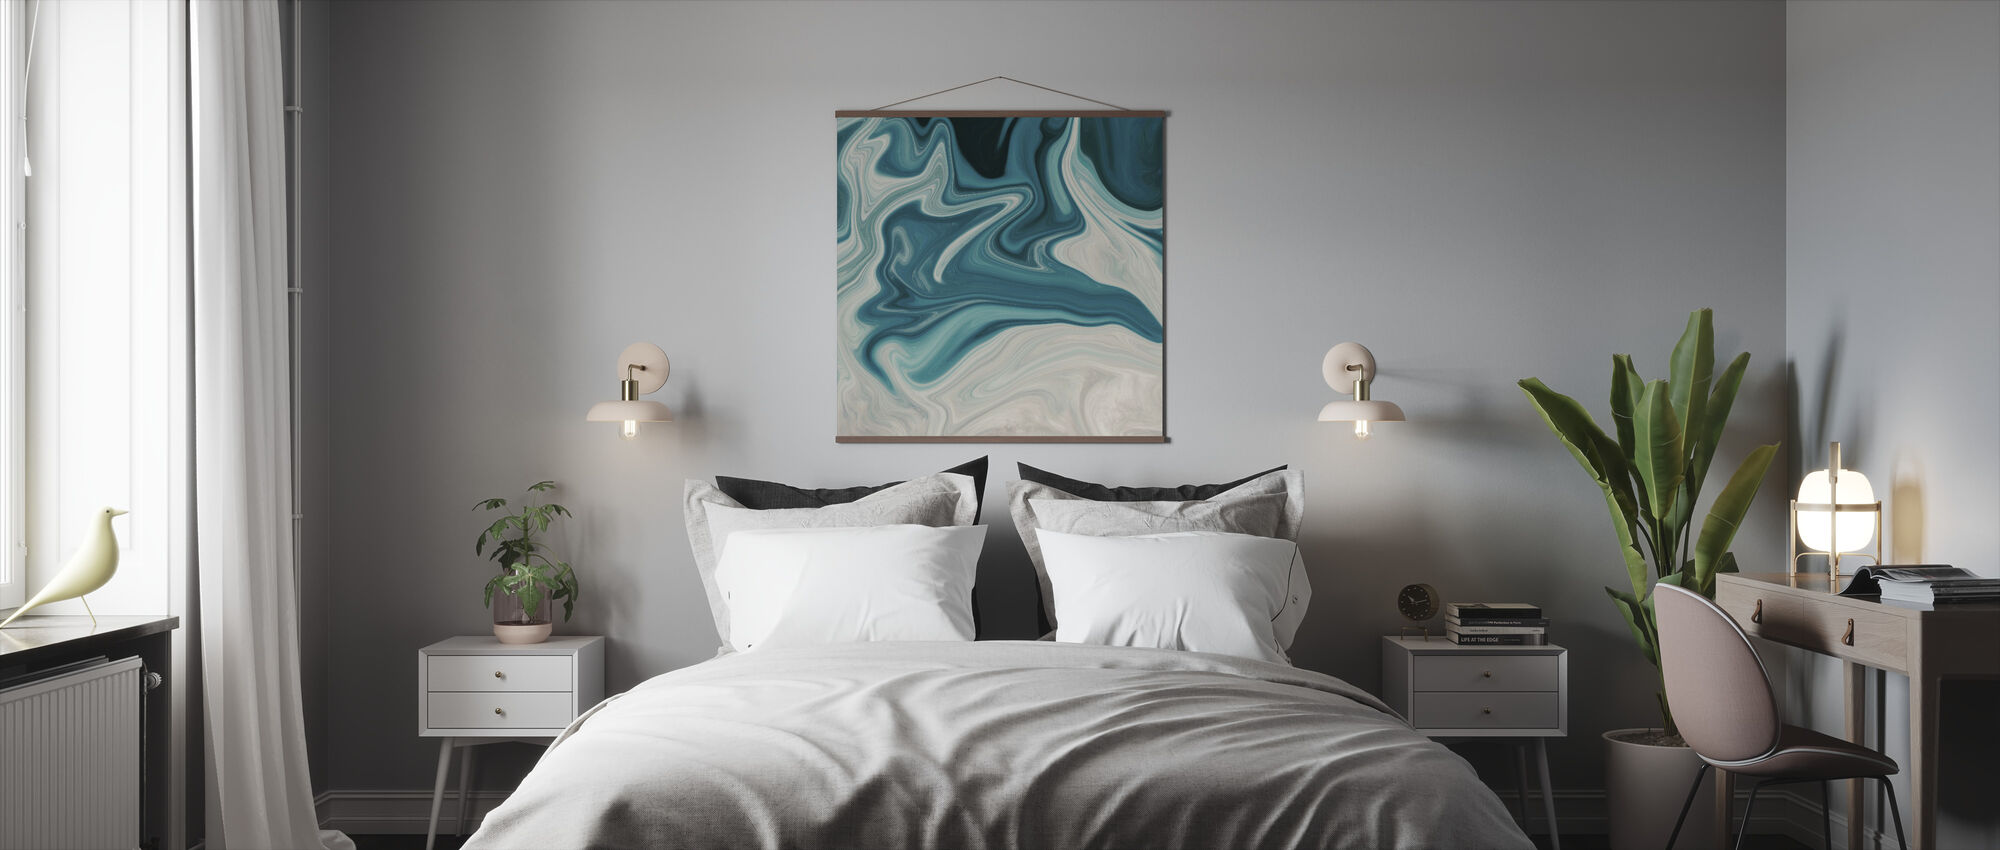 Sea of Marble - Poster - Bedroom